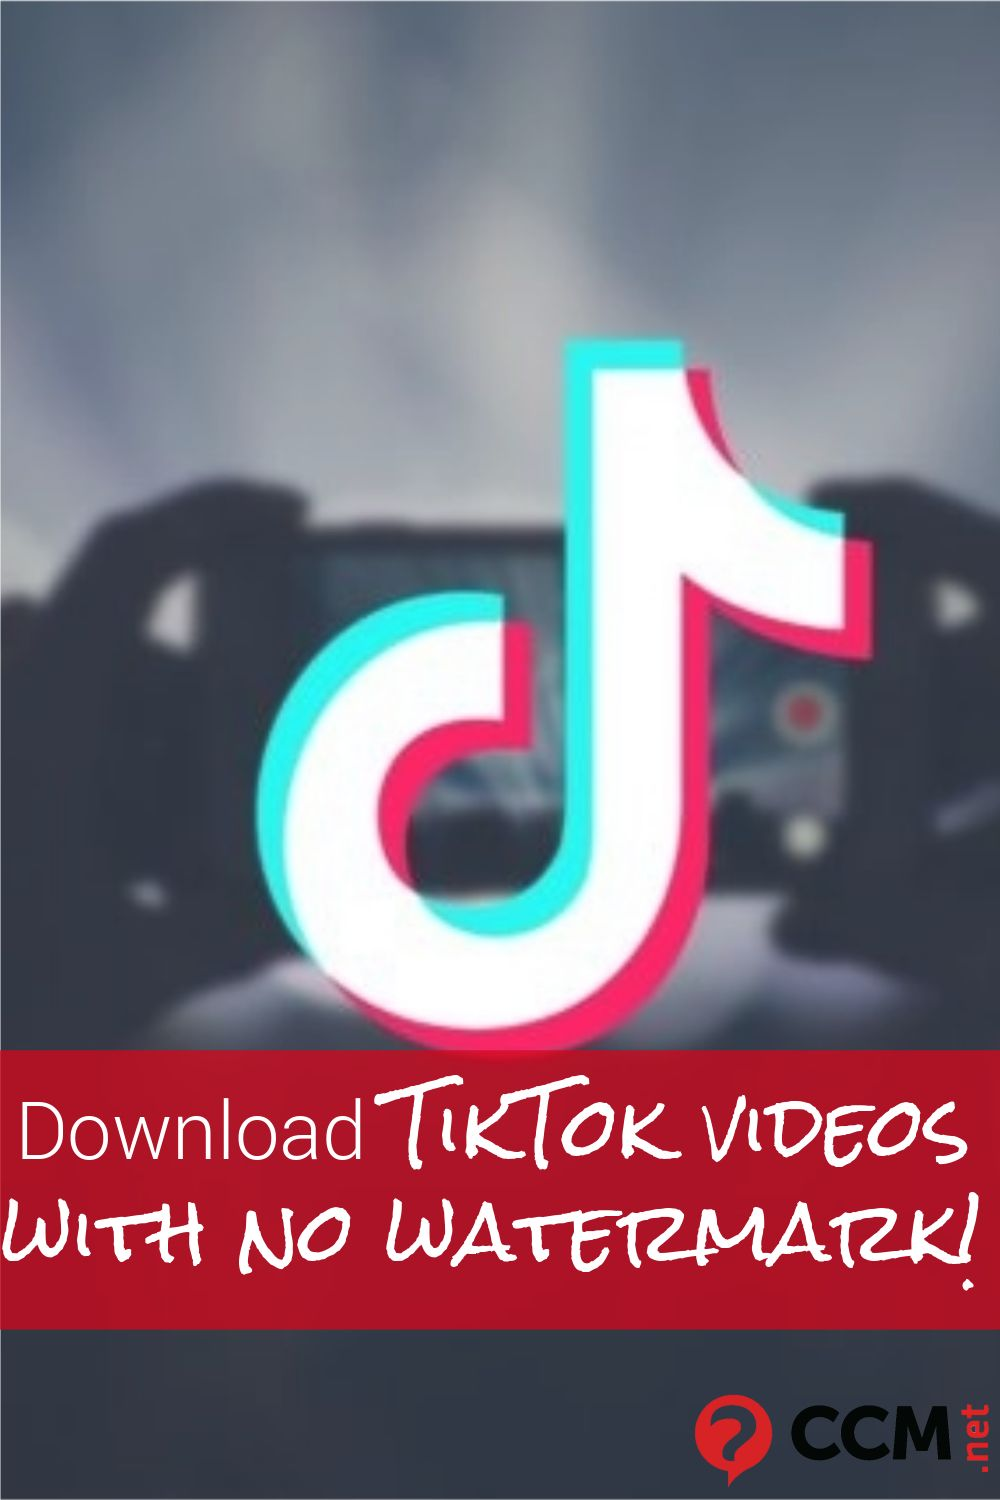 How to download tiktok videos with no watermark in 2020